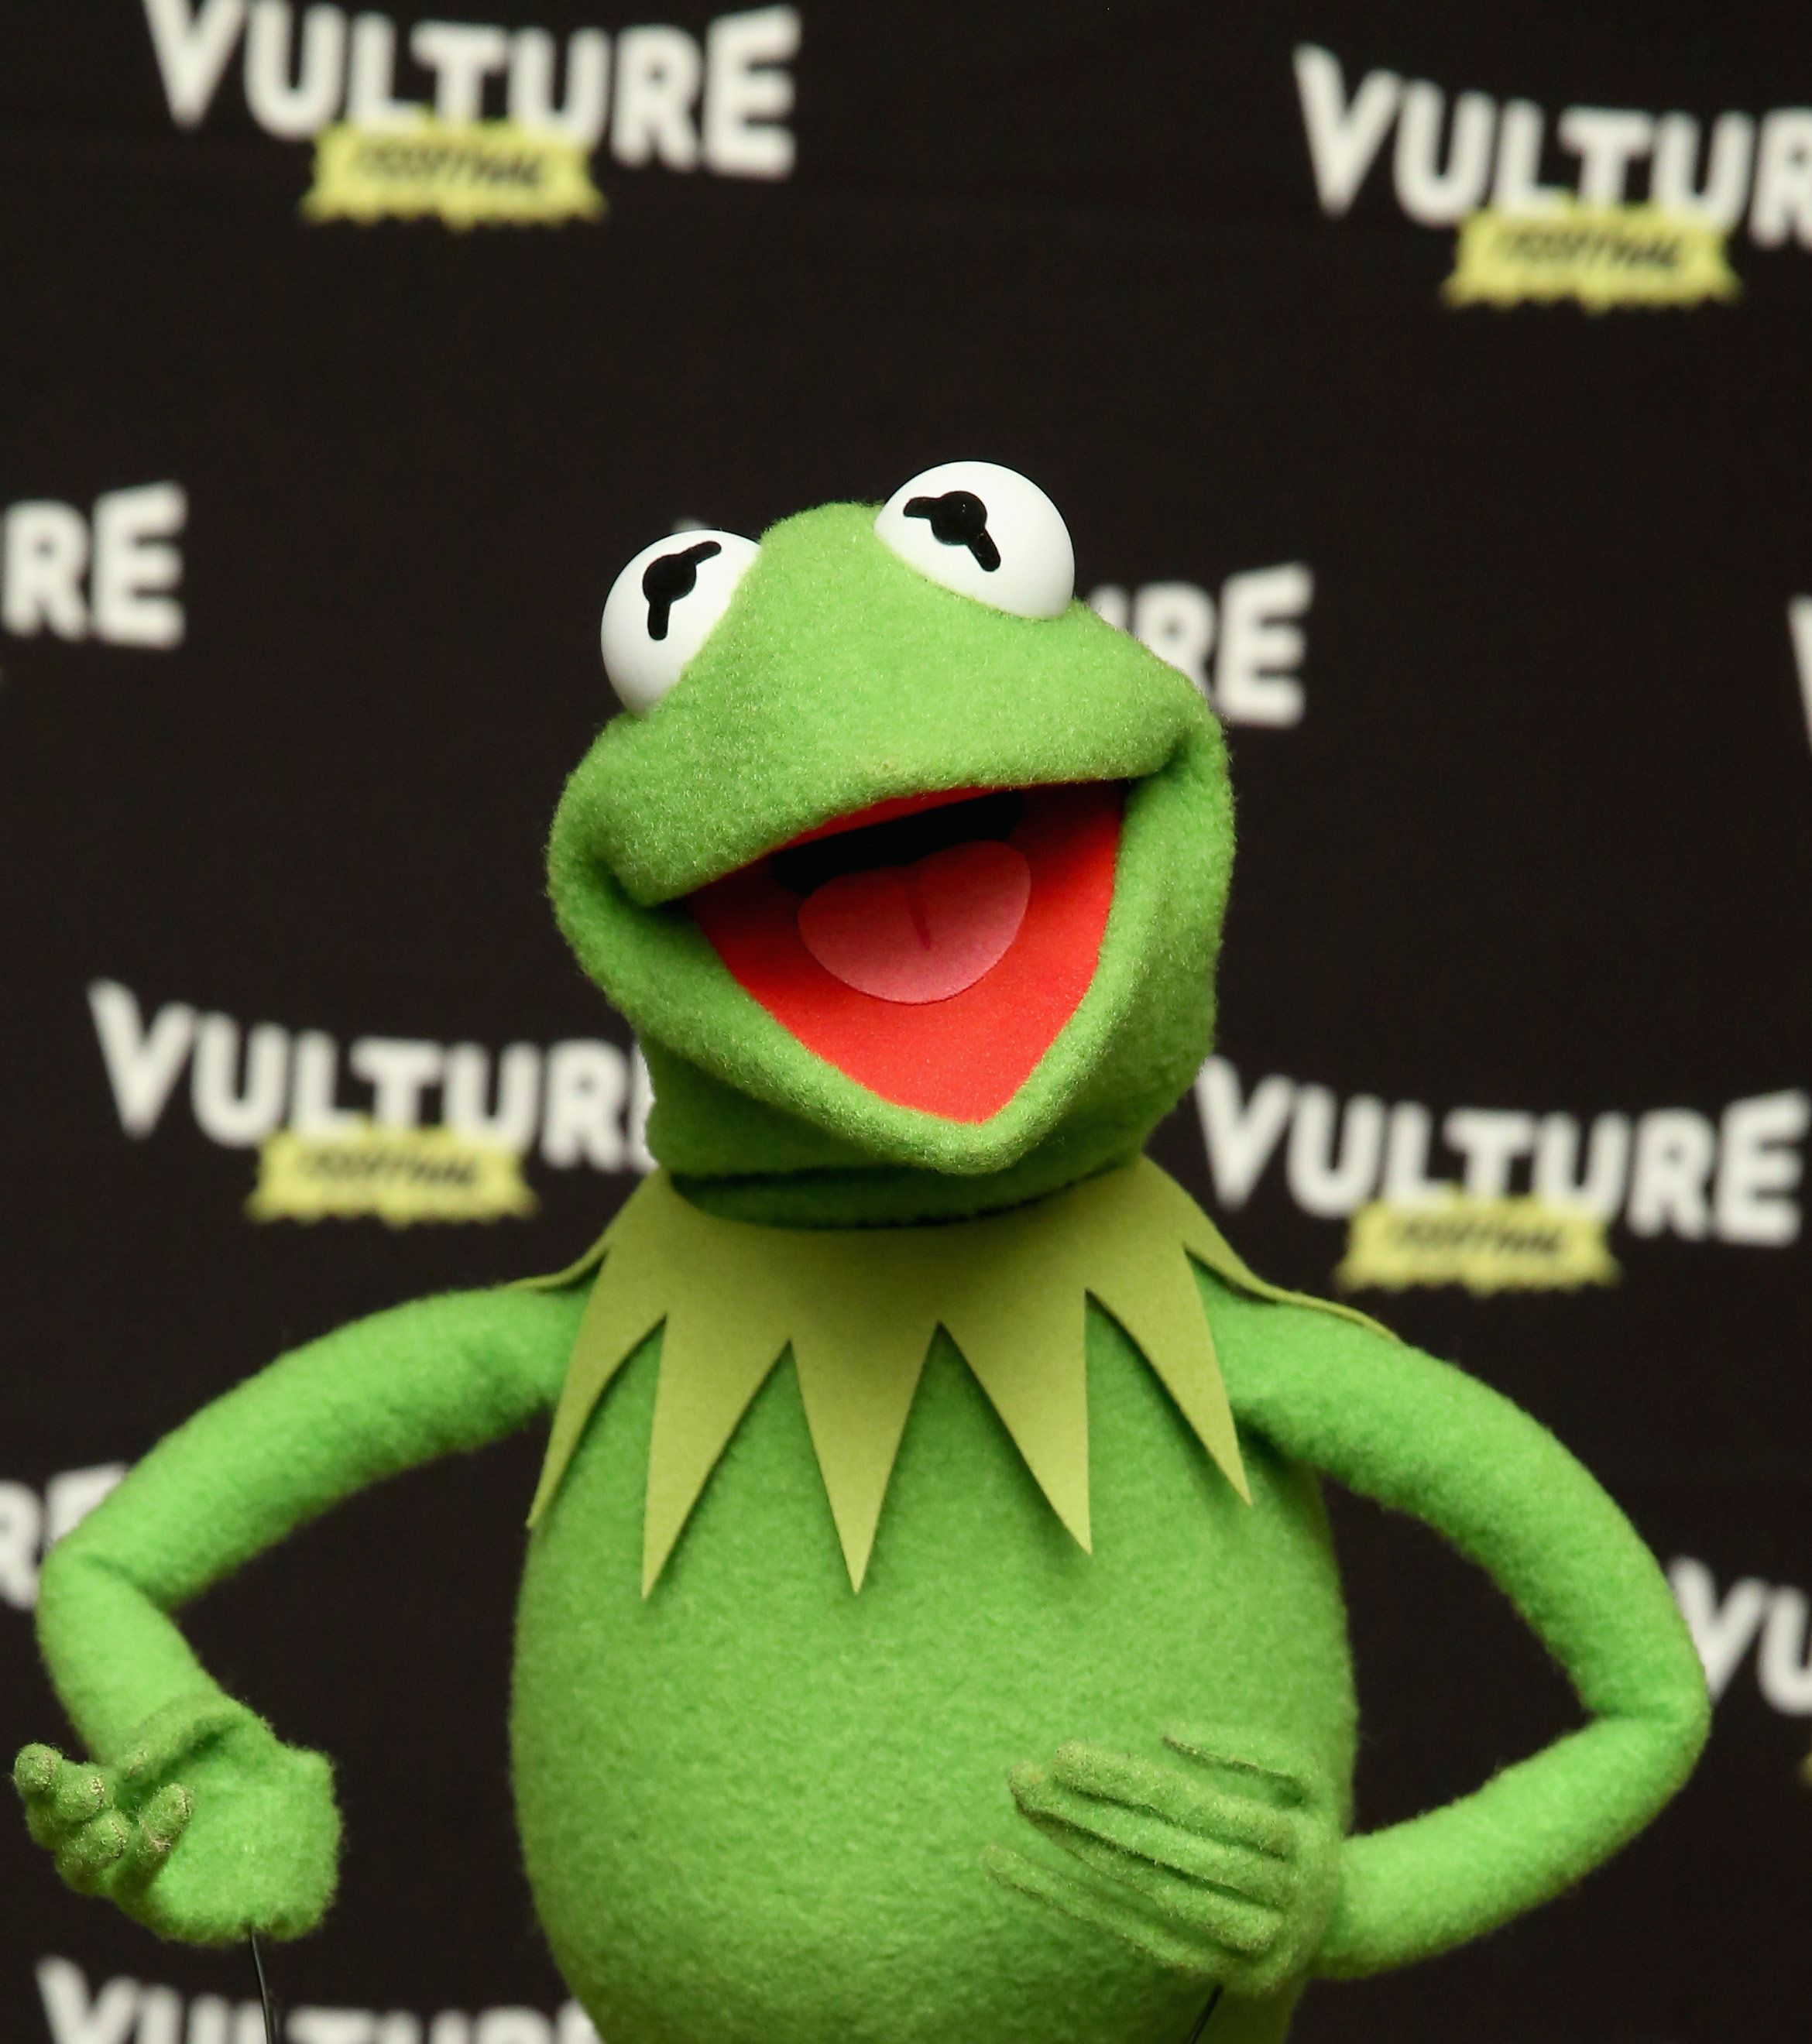 NEW YORK, NY - MAY 21: Kermit the Frog attends the Vulture Festival at Milk Studios on May 21, 2016 in New York City.  (Photo by Cindy Ord/Getty Images for Vulture Festival)